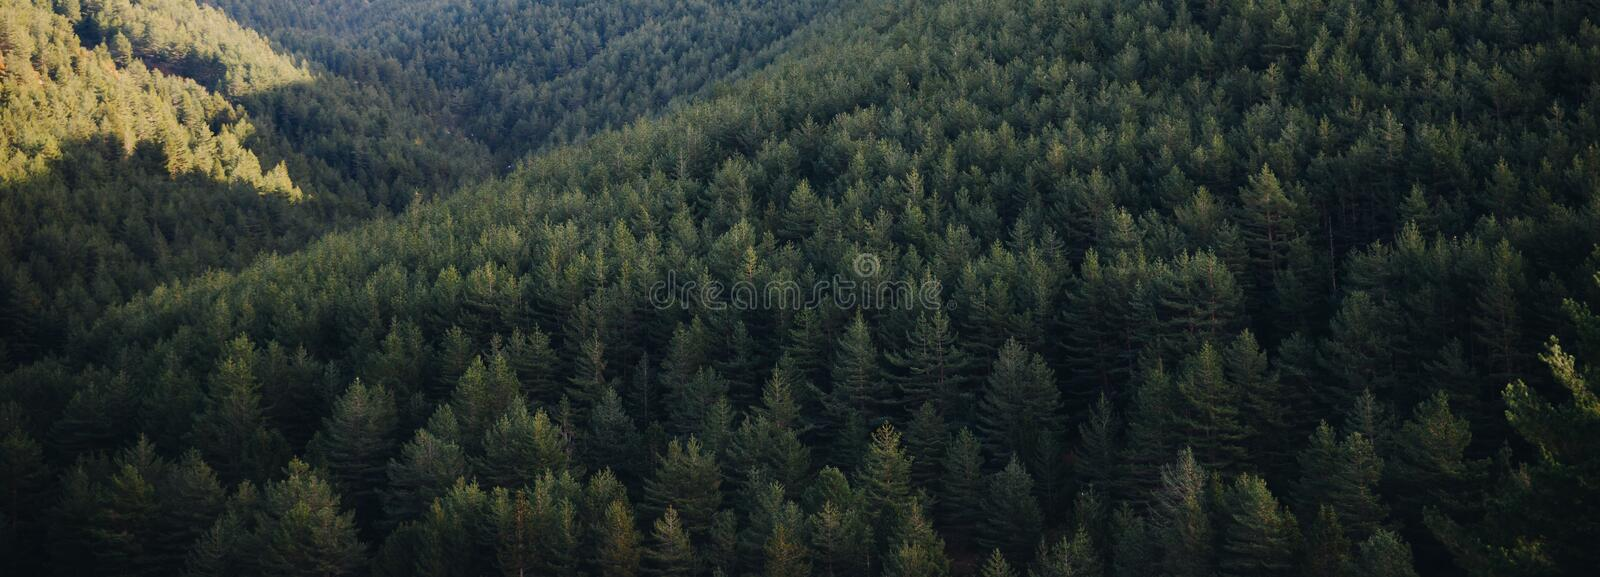 Panoramic landscape of pine tree forest stock photo